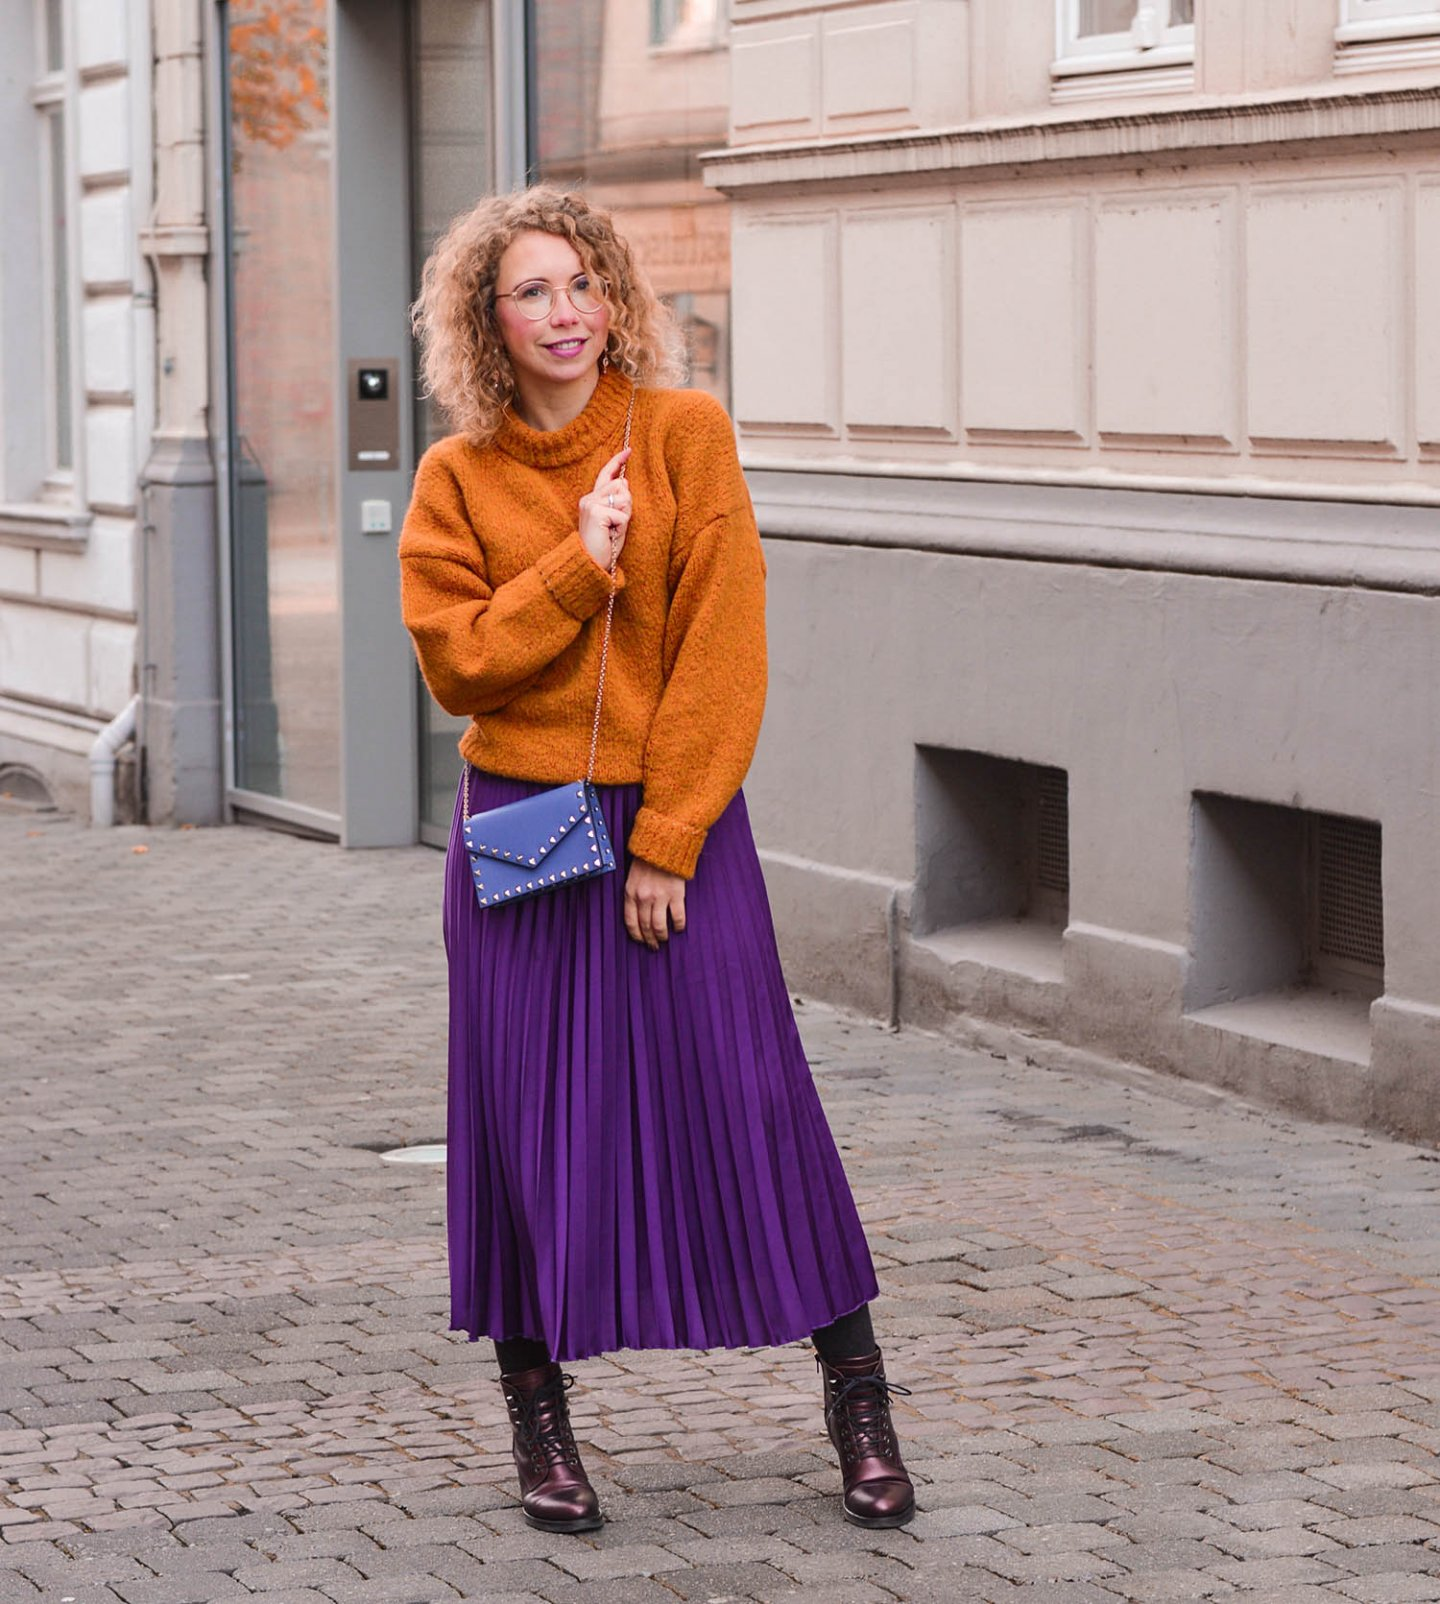 farbe tragen im winter - outfit Inspiration